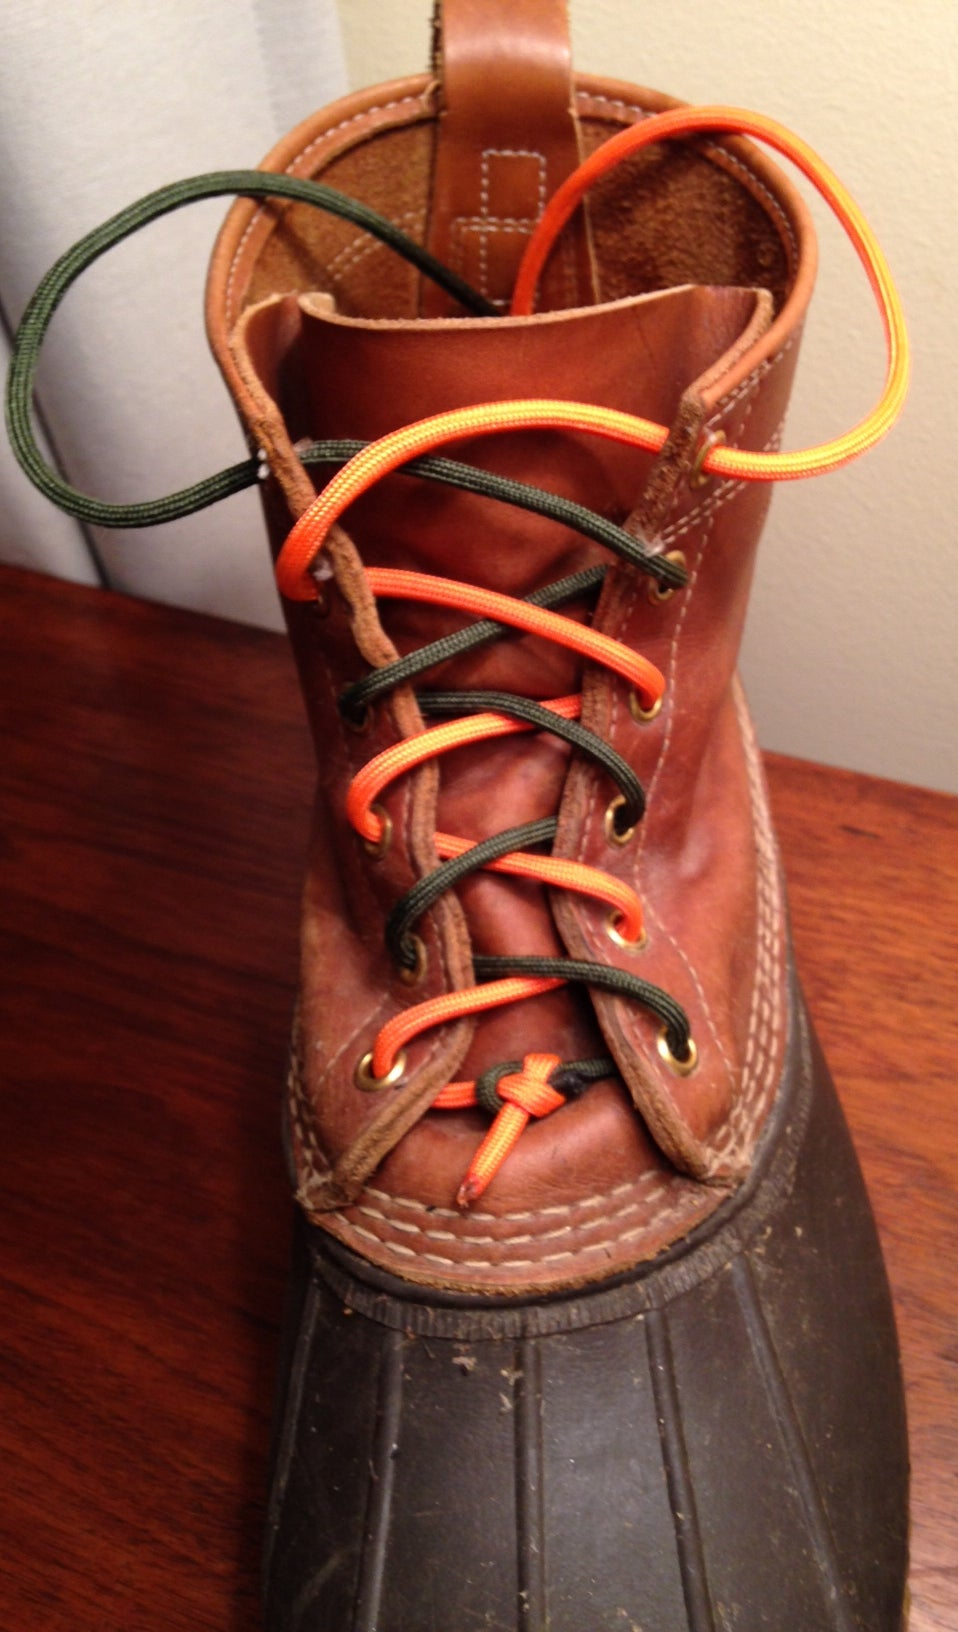 How to Lace Your Boots